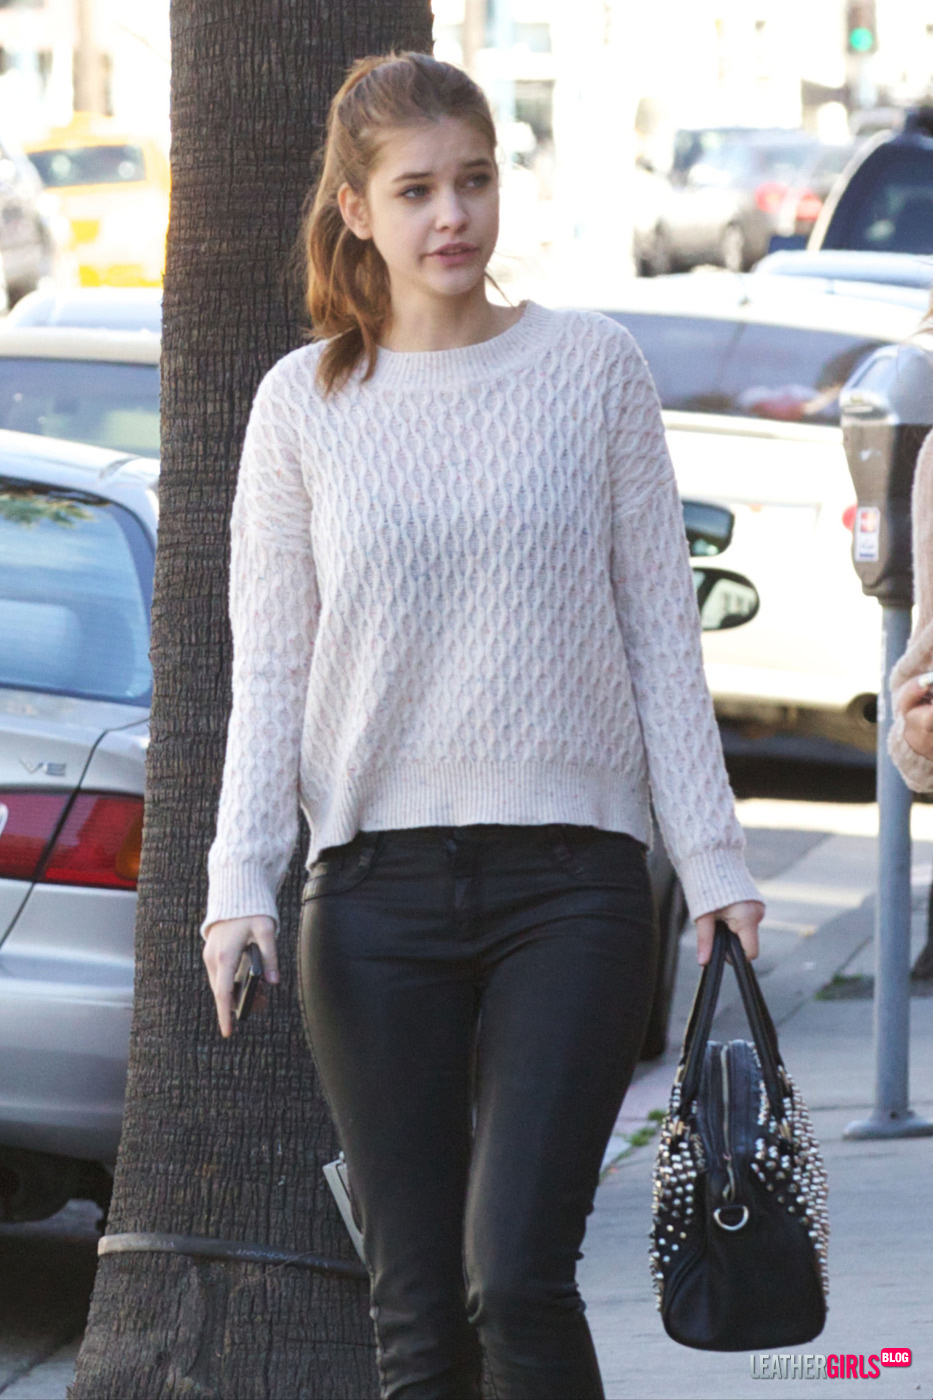 Barbara Palvin And Bella Thorne cleveland854321: IT AL...